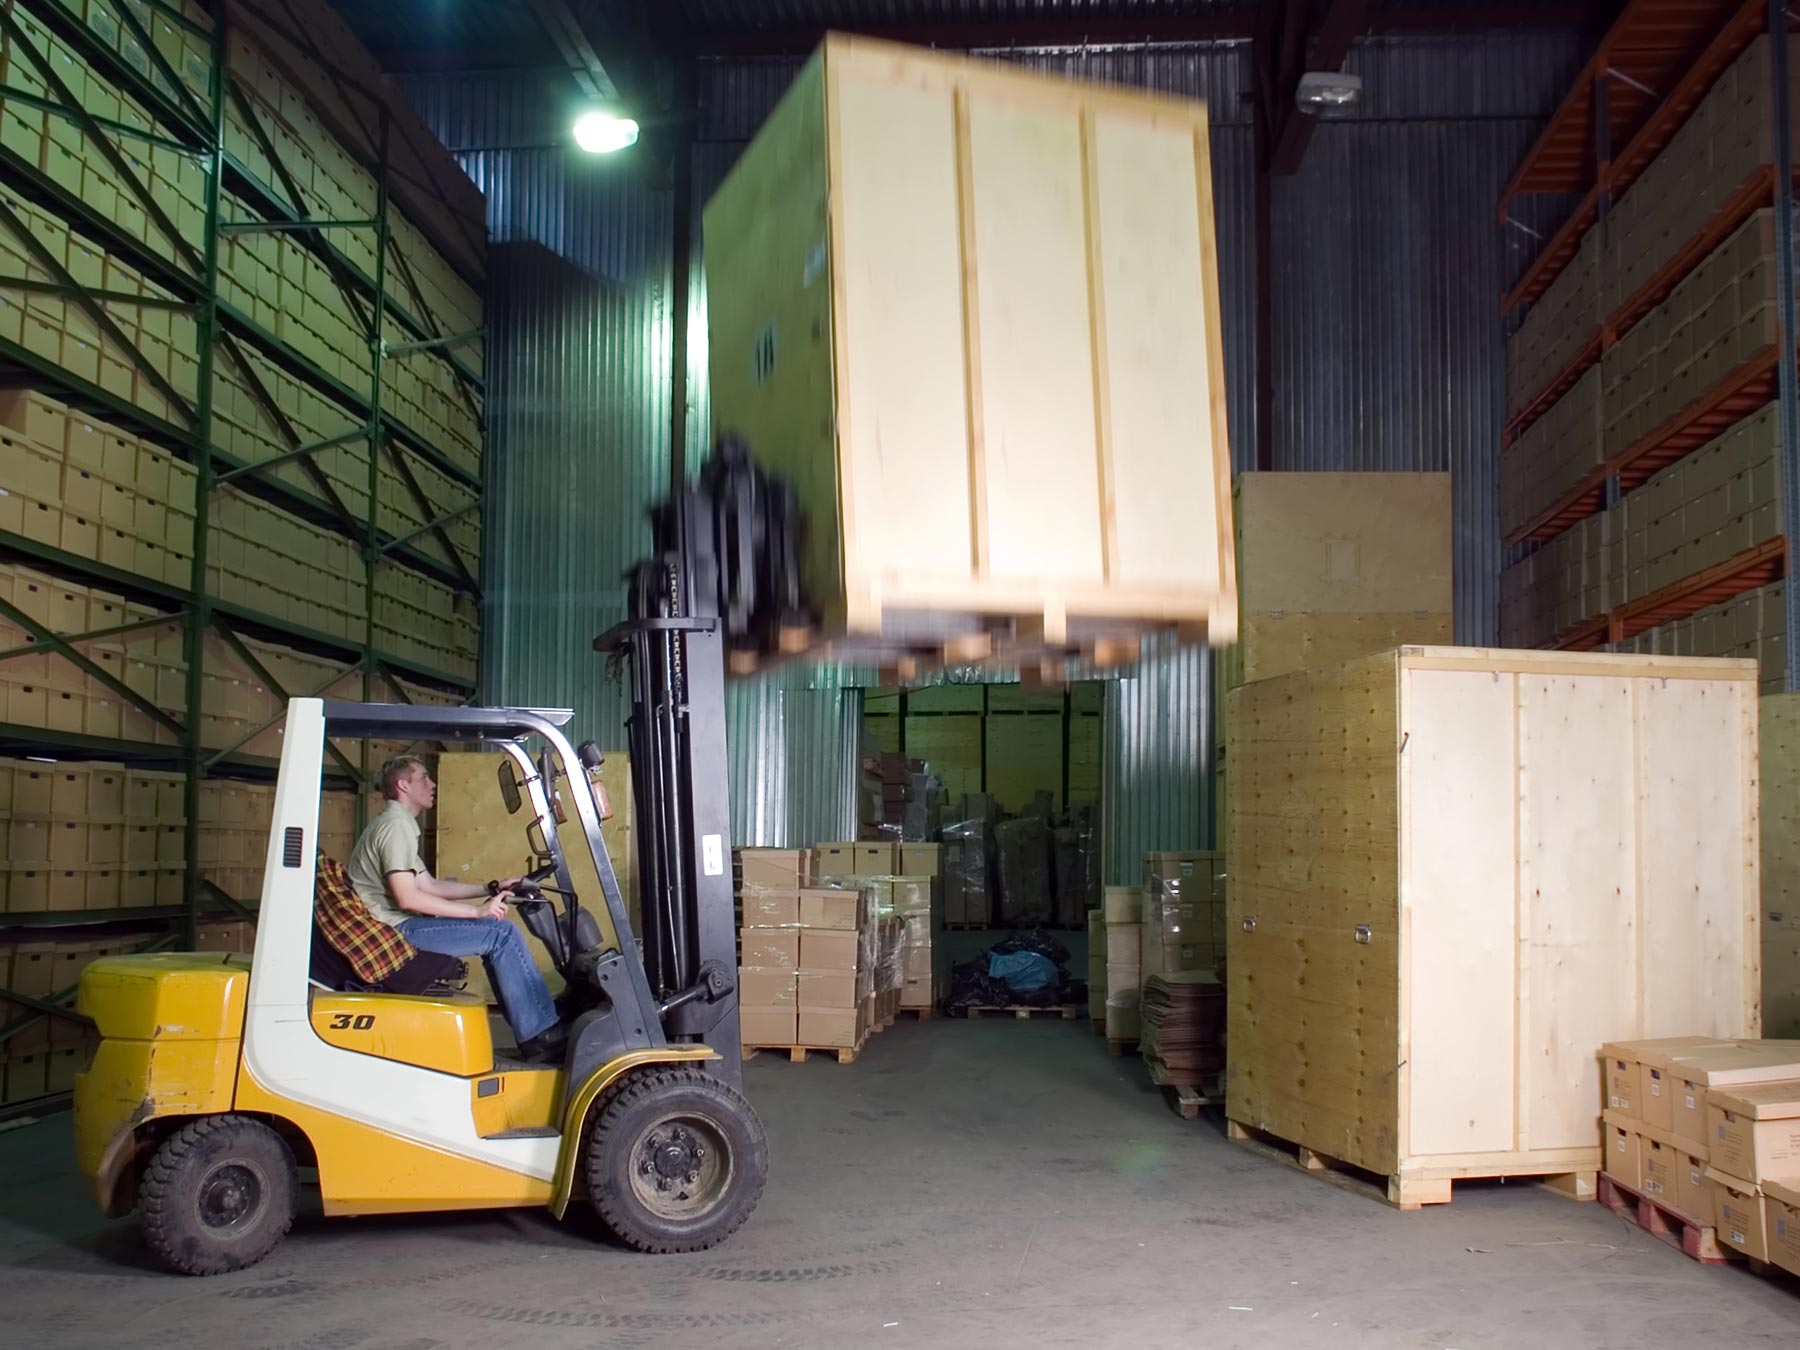 Top 6 Forklift Hazards Every Workplace Should Know